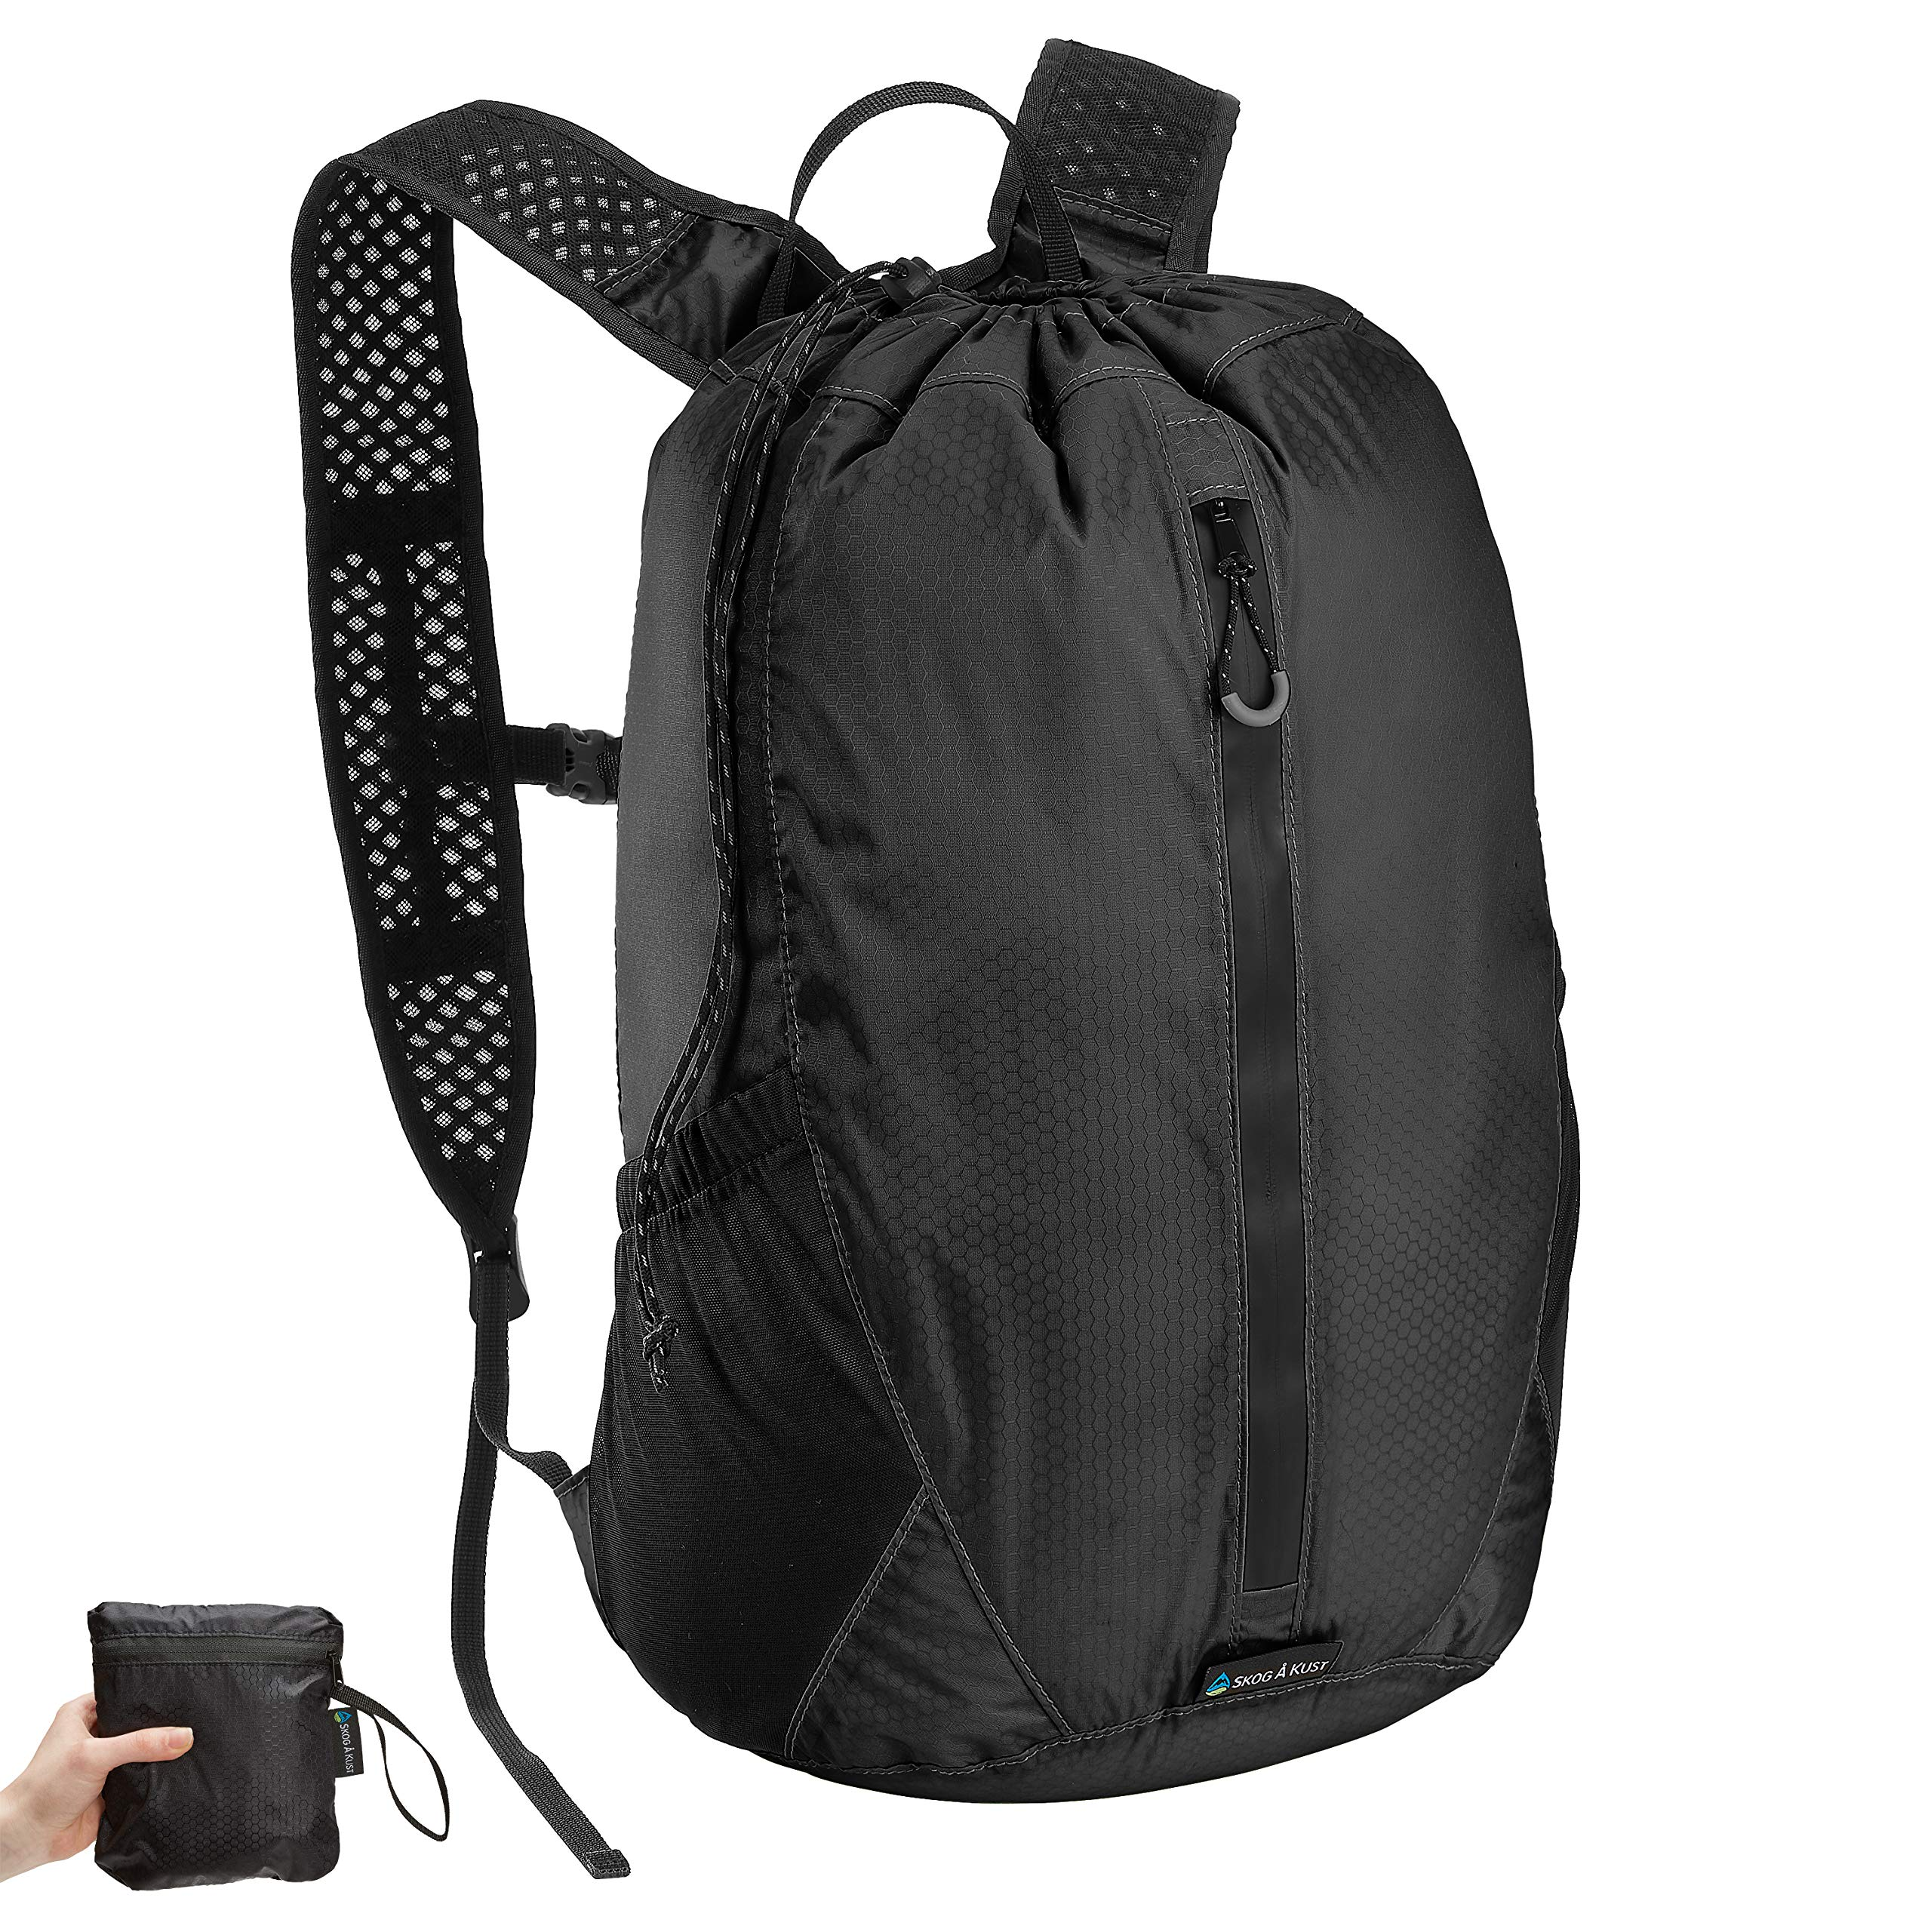 Skog Å Kust LiteSåk 2.0 Waterproof Ultralight Dry Bag | Black 2.0, 18 Liter Backpack by Skog Å Kust